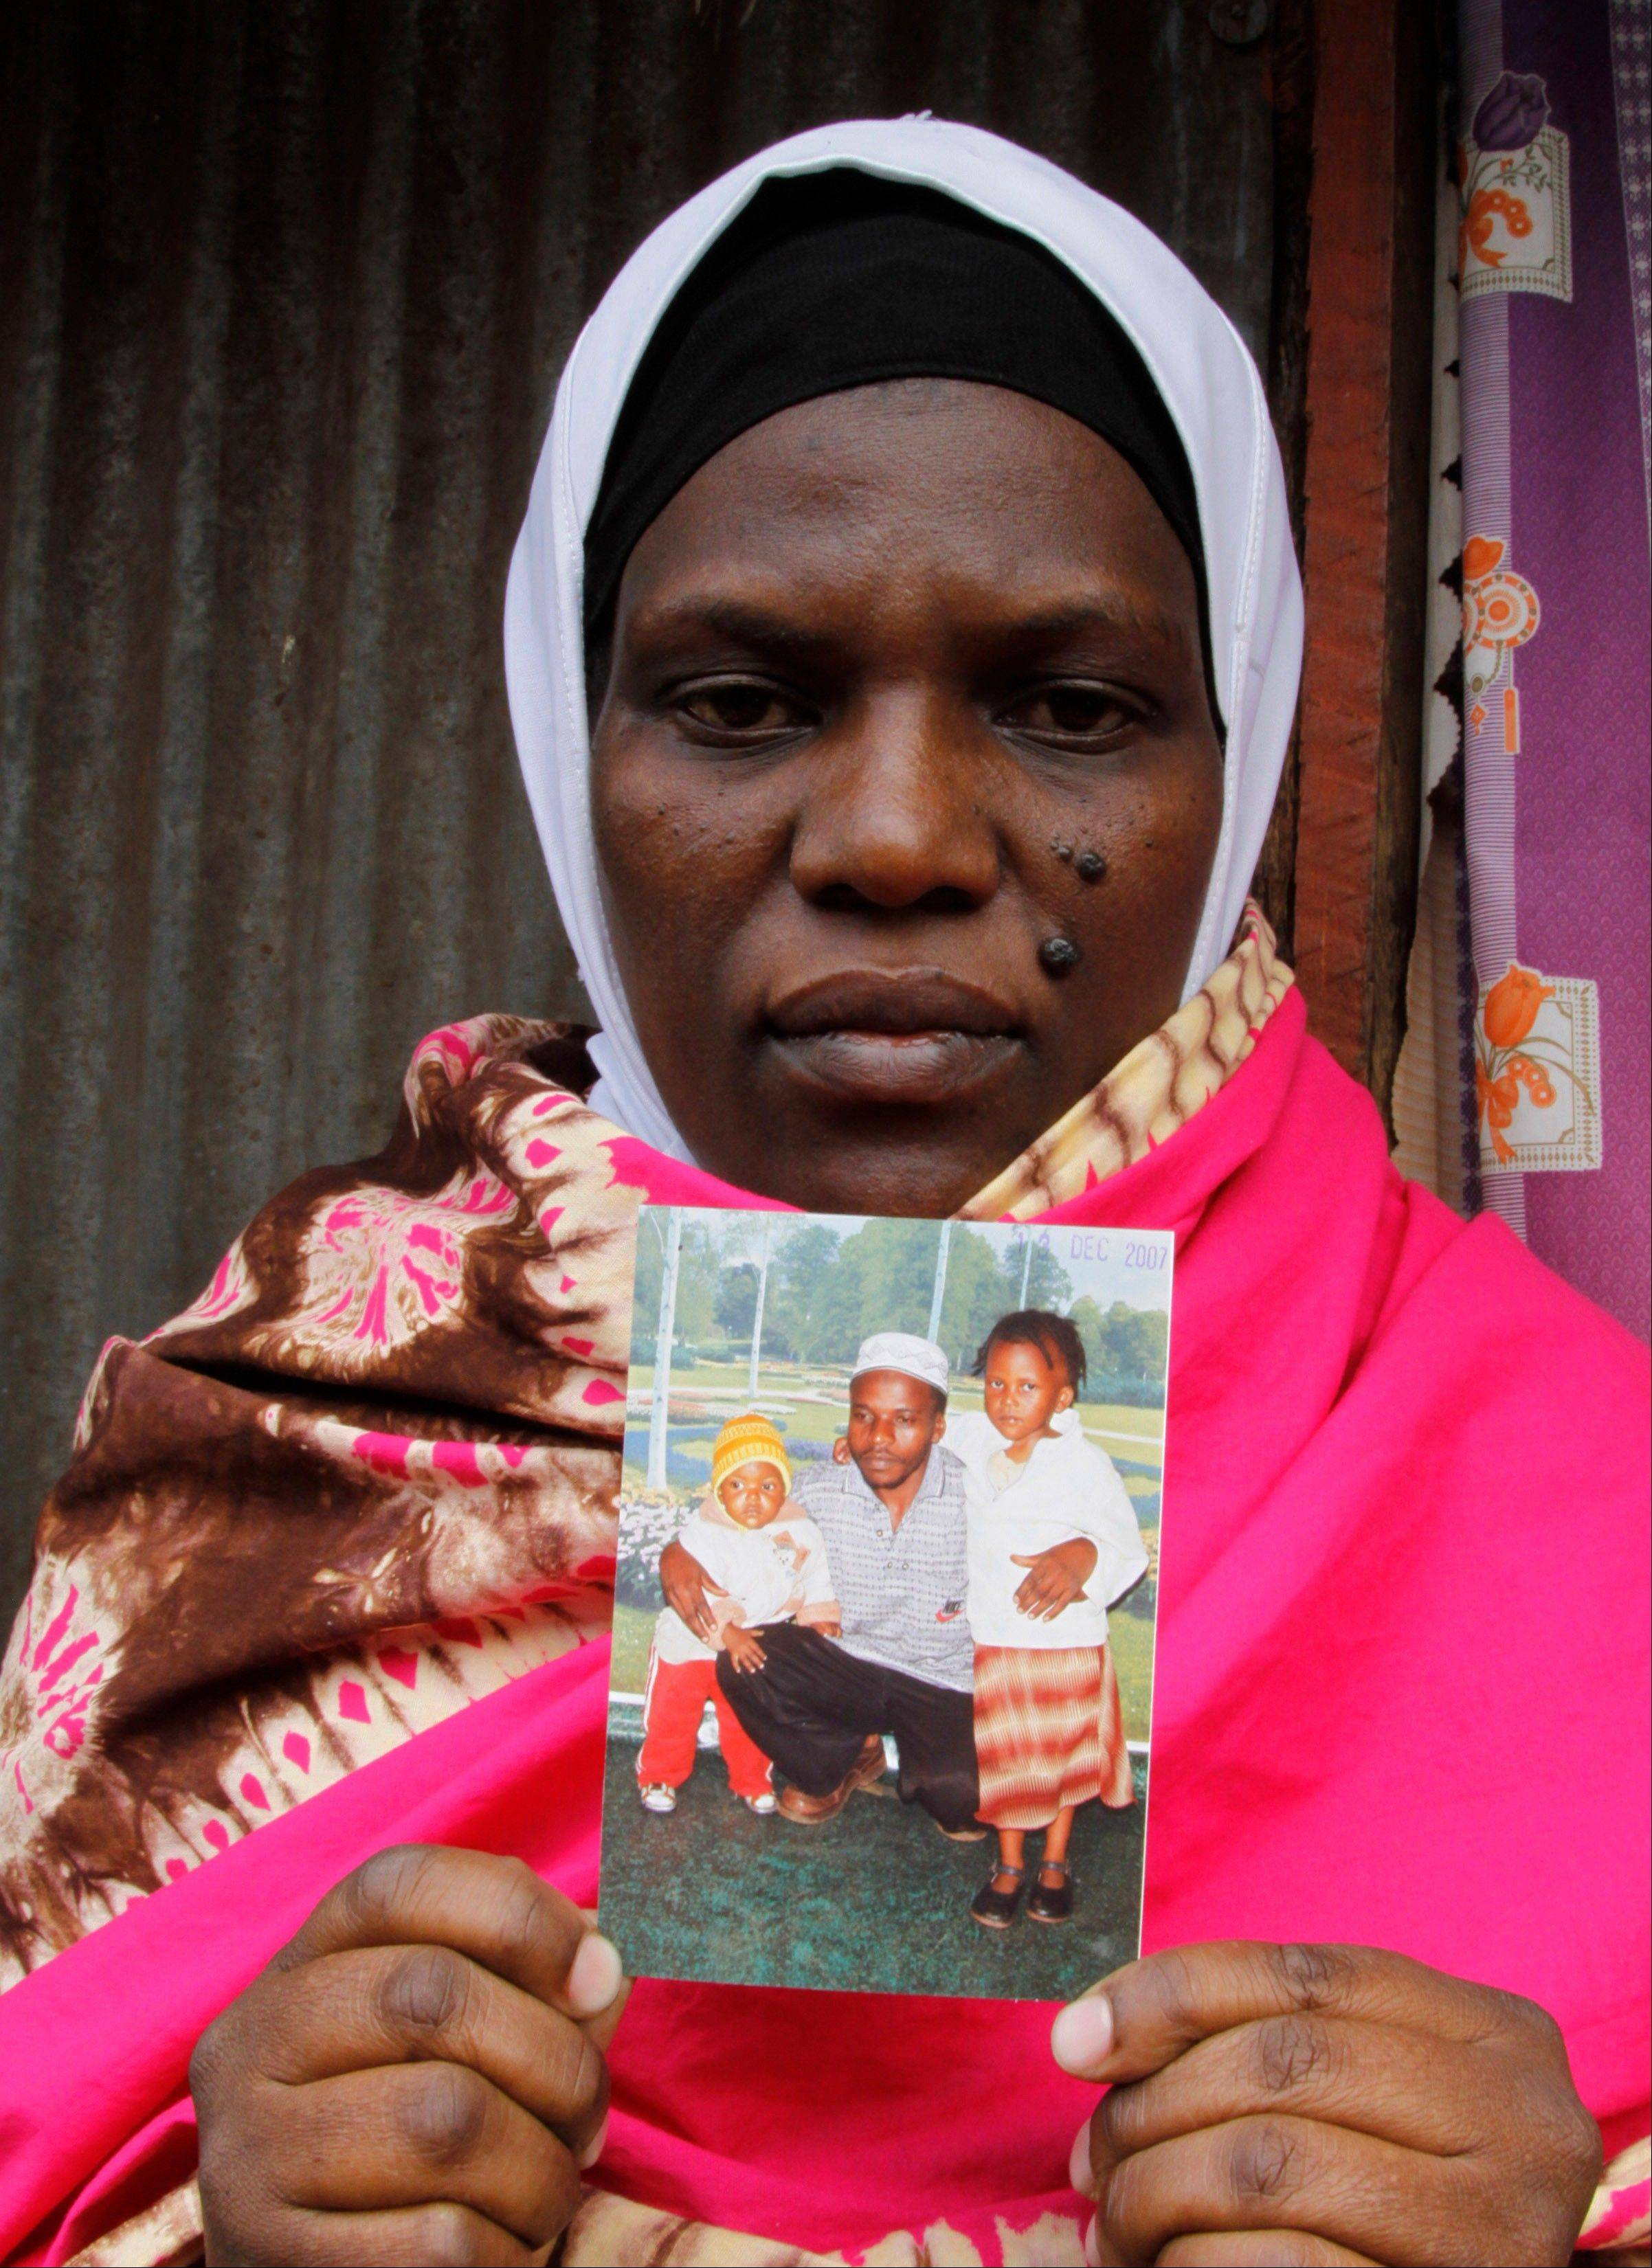 Latifah Naiman Mariki, widow of the late Haji Lukindo, holds a family photo Friday showing her late husband and her two daughters outside her house in Nairobi, Kenya.